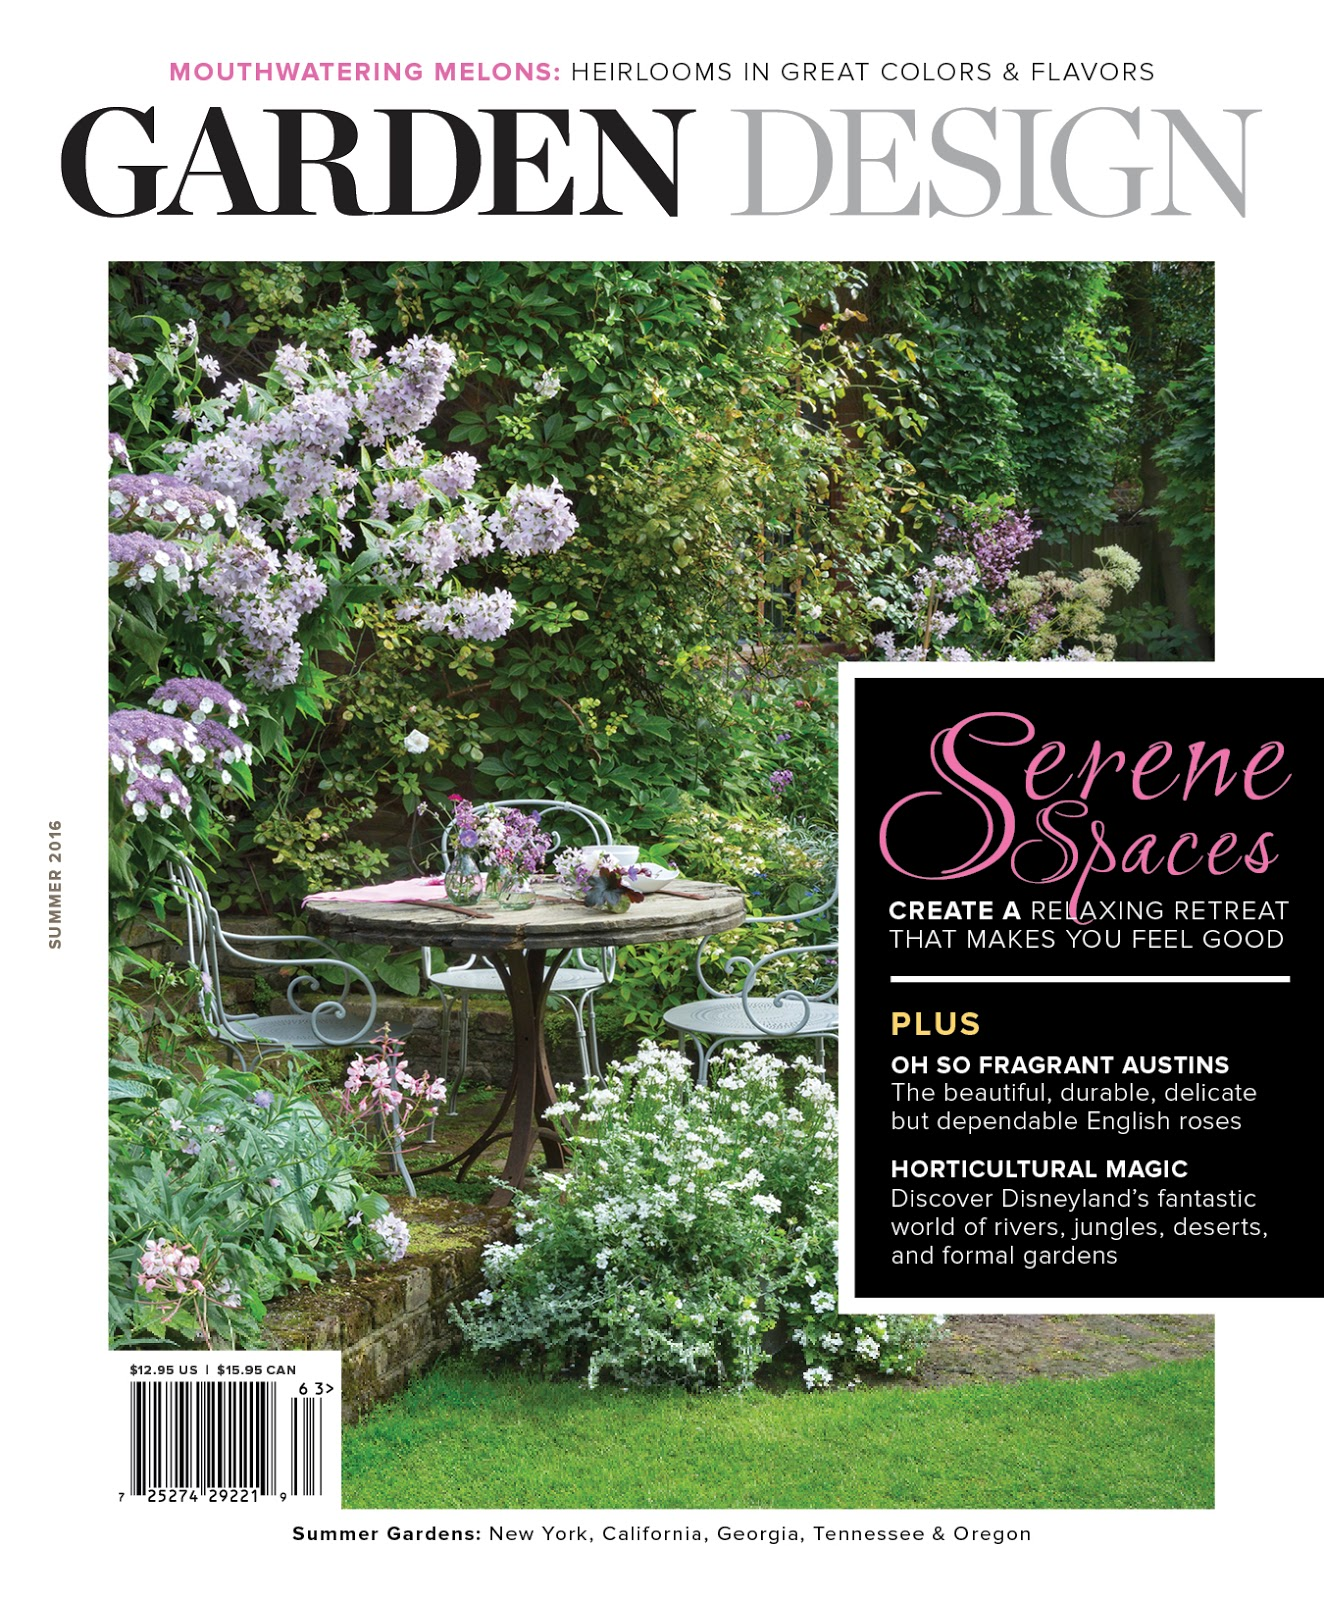 garden design magazine my tips and interview